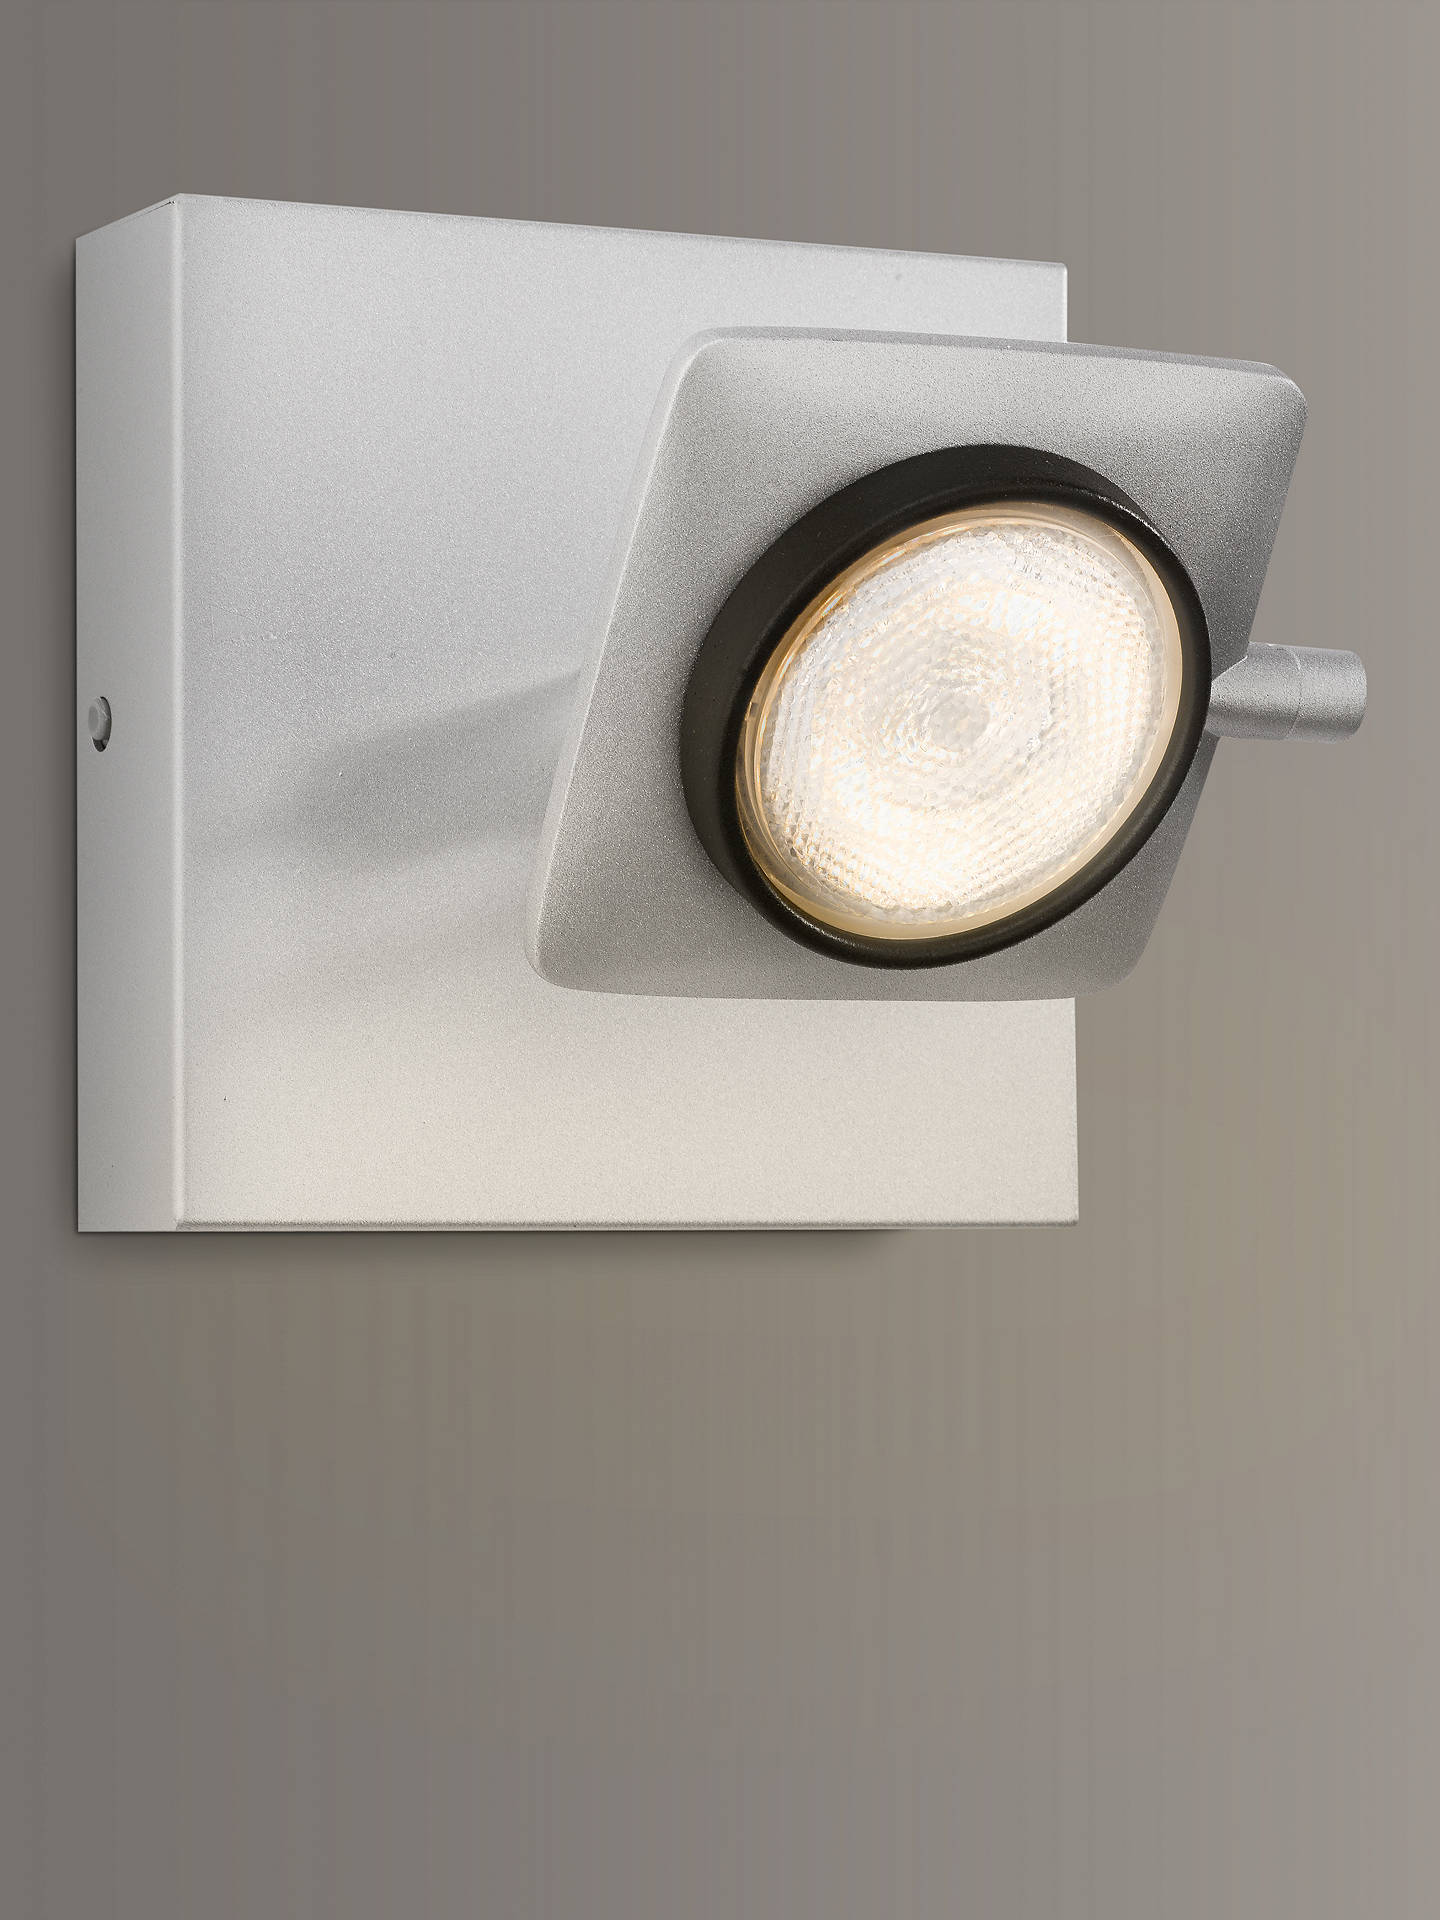 Buy Philips Millennium LED Single Warmglow Spotlight, Aluminium Online at johnlewis.com